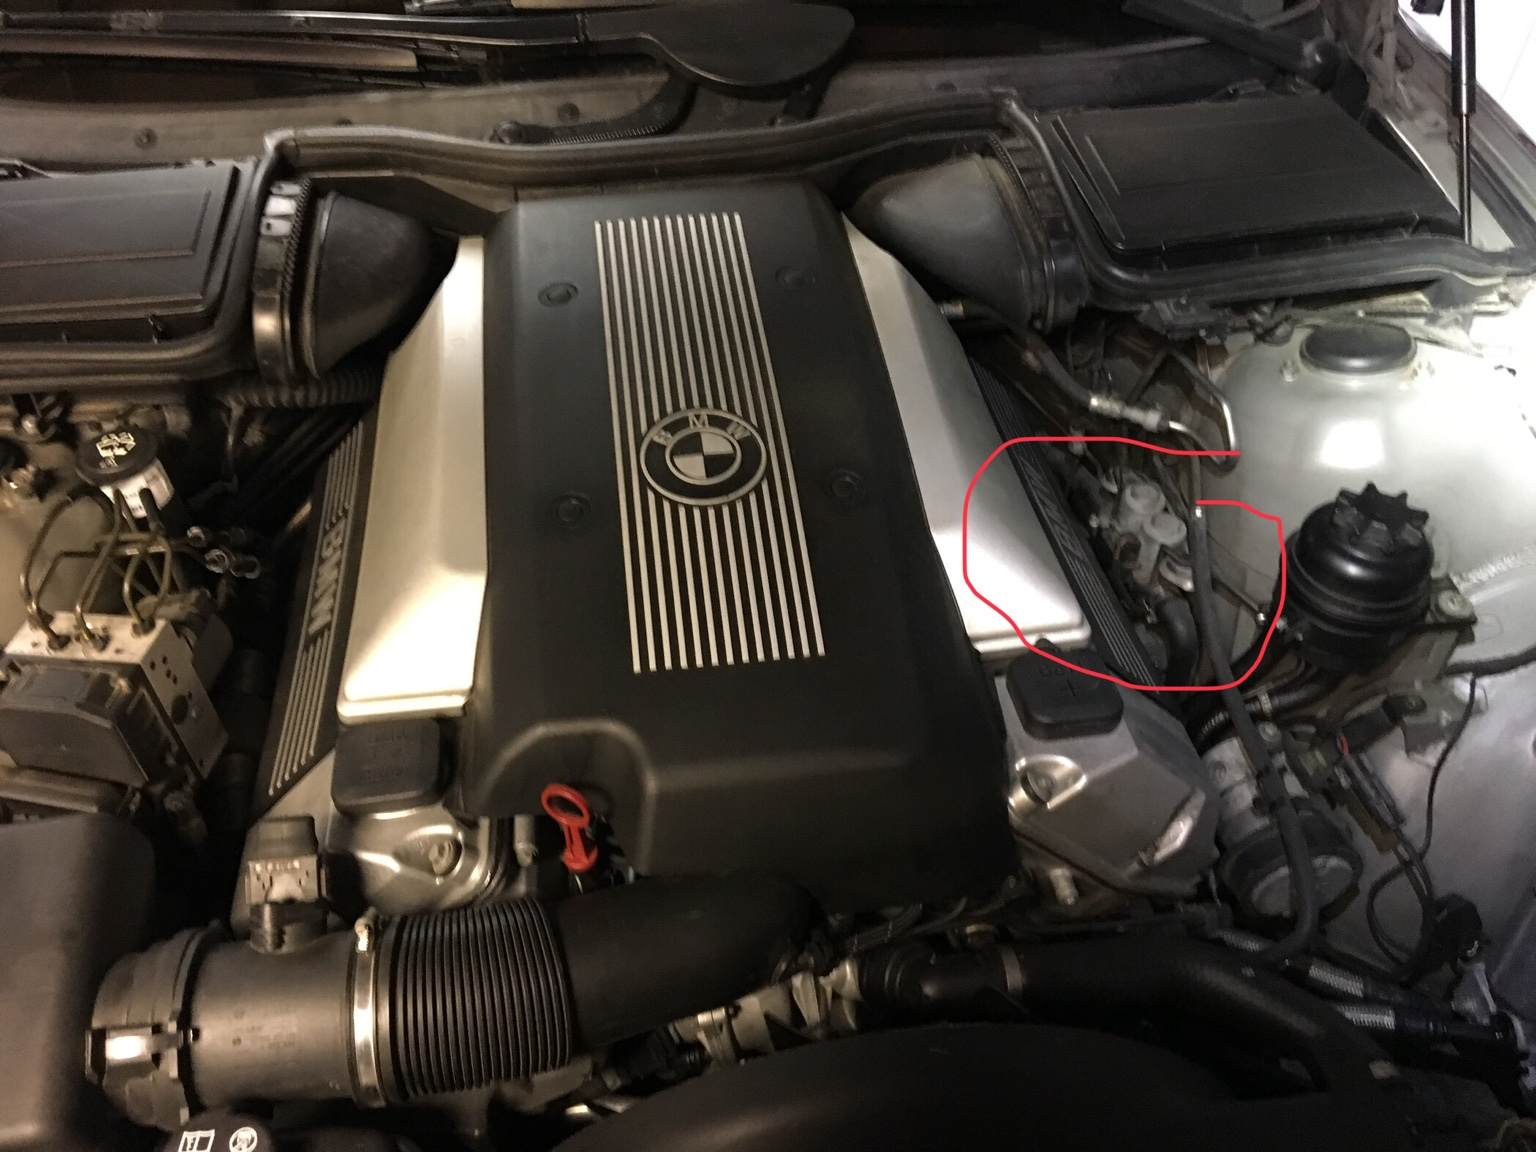 hight resolution of where is it specifically on the 540i right side of the engine bay on the strut housing here are some pictures with zoom